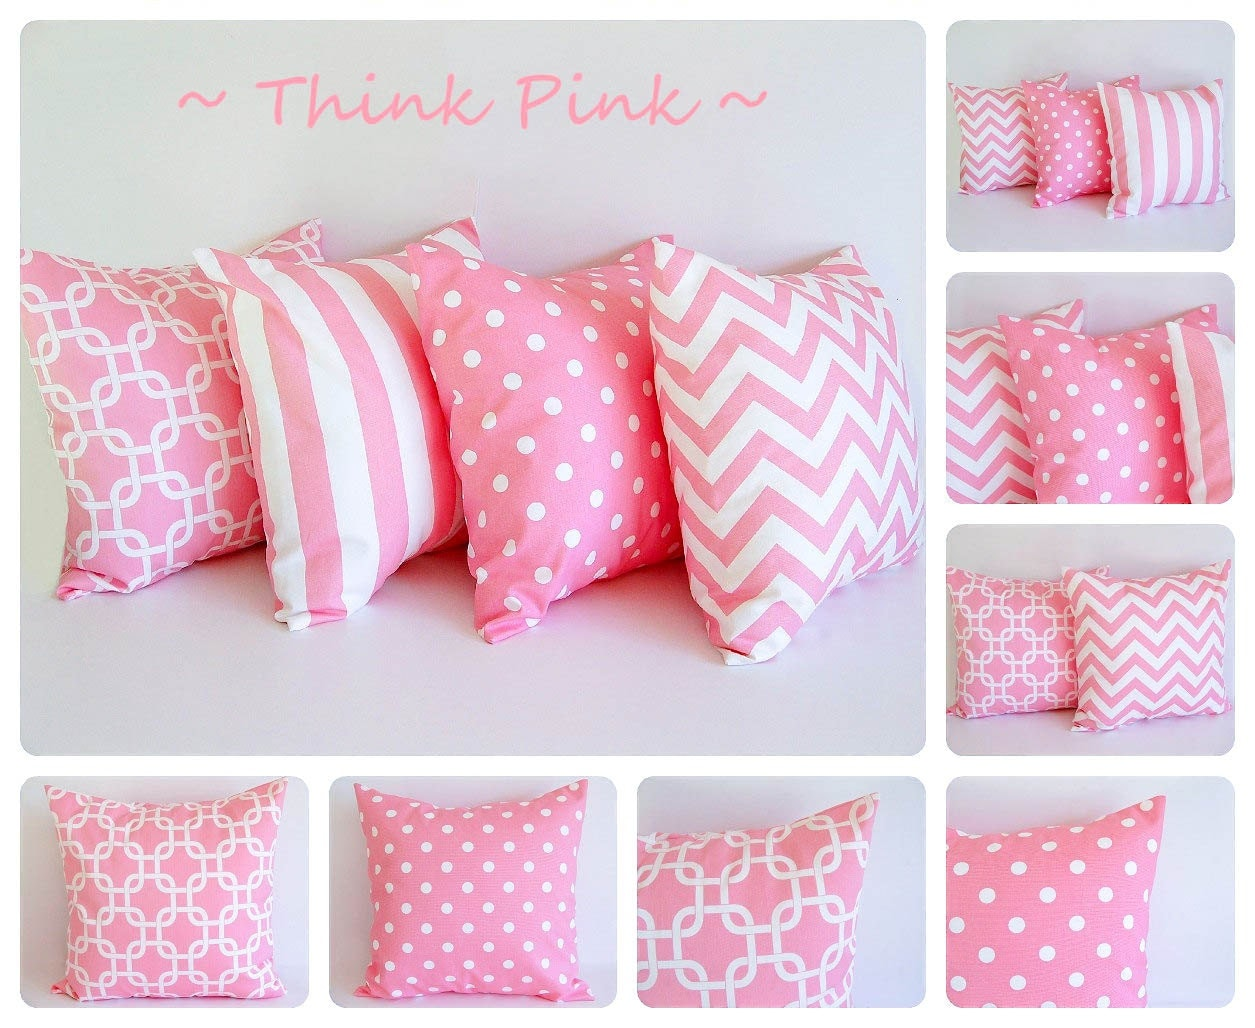 Baby Pink Decorative Pillows : Pink pillow cover One cushion cover baby pink and white throw